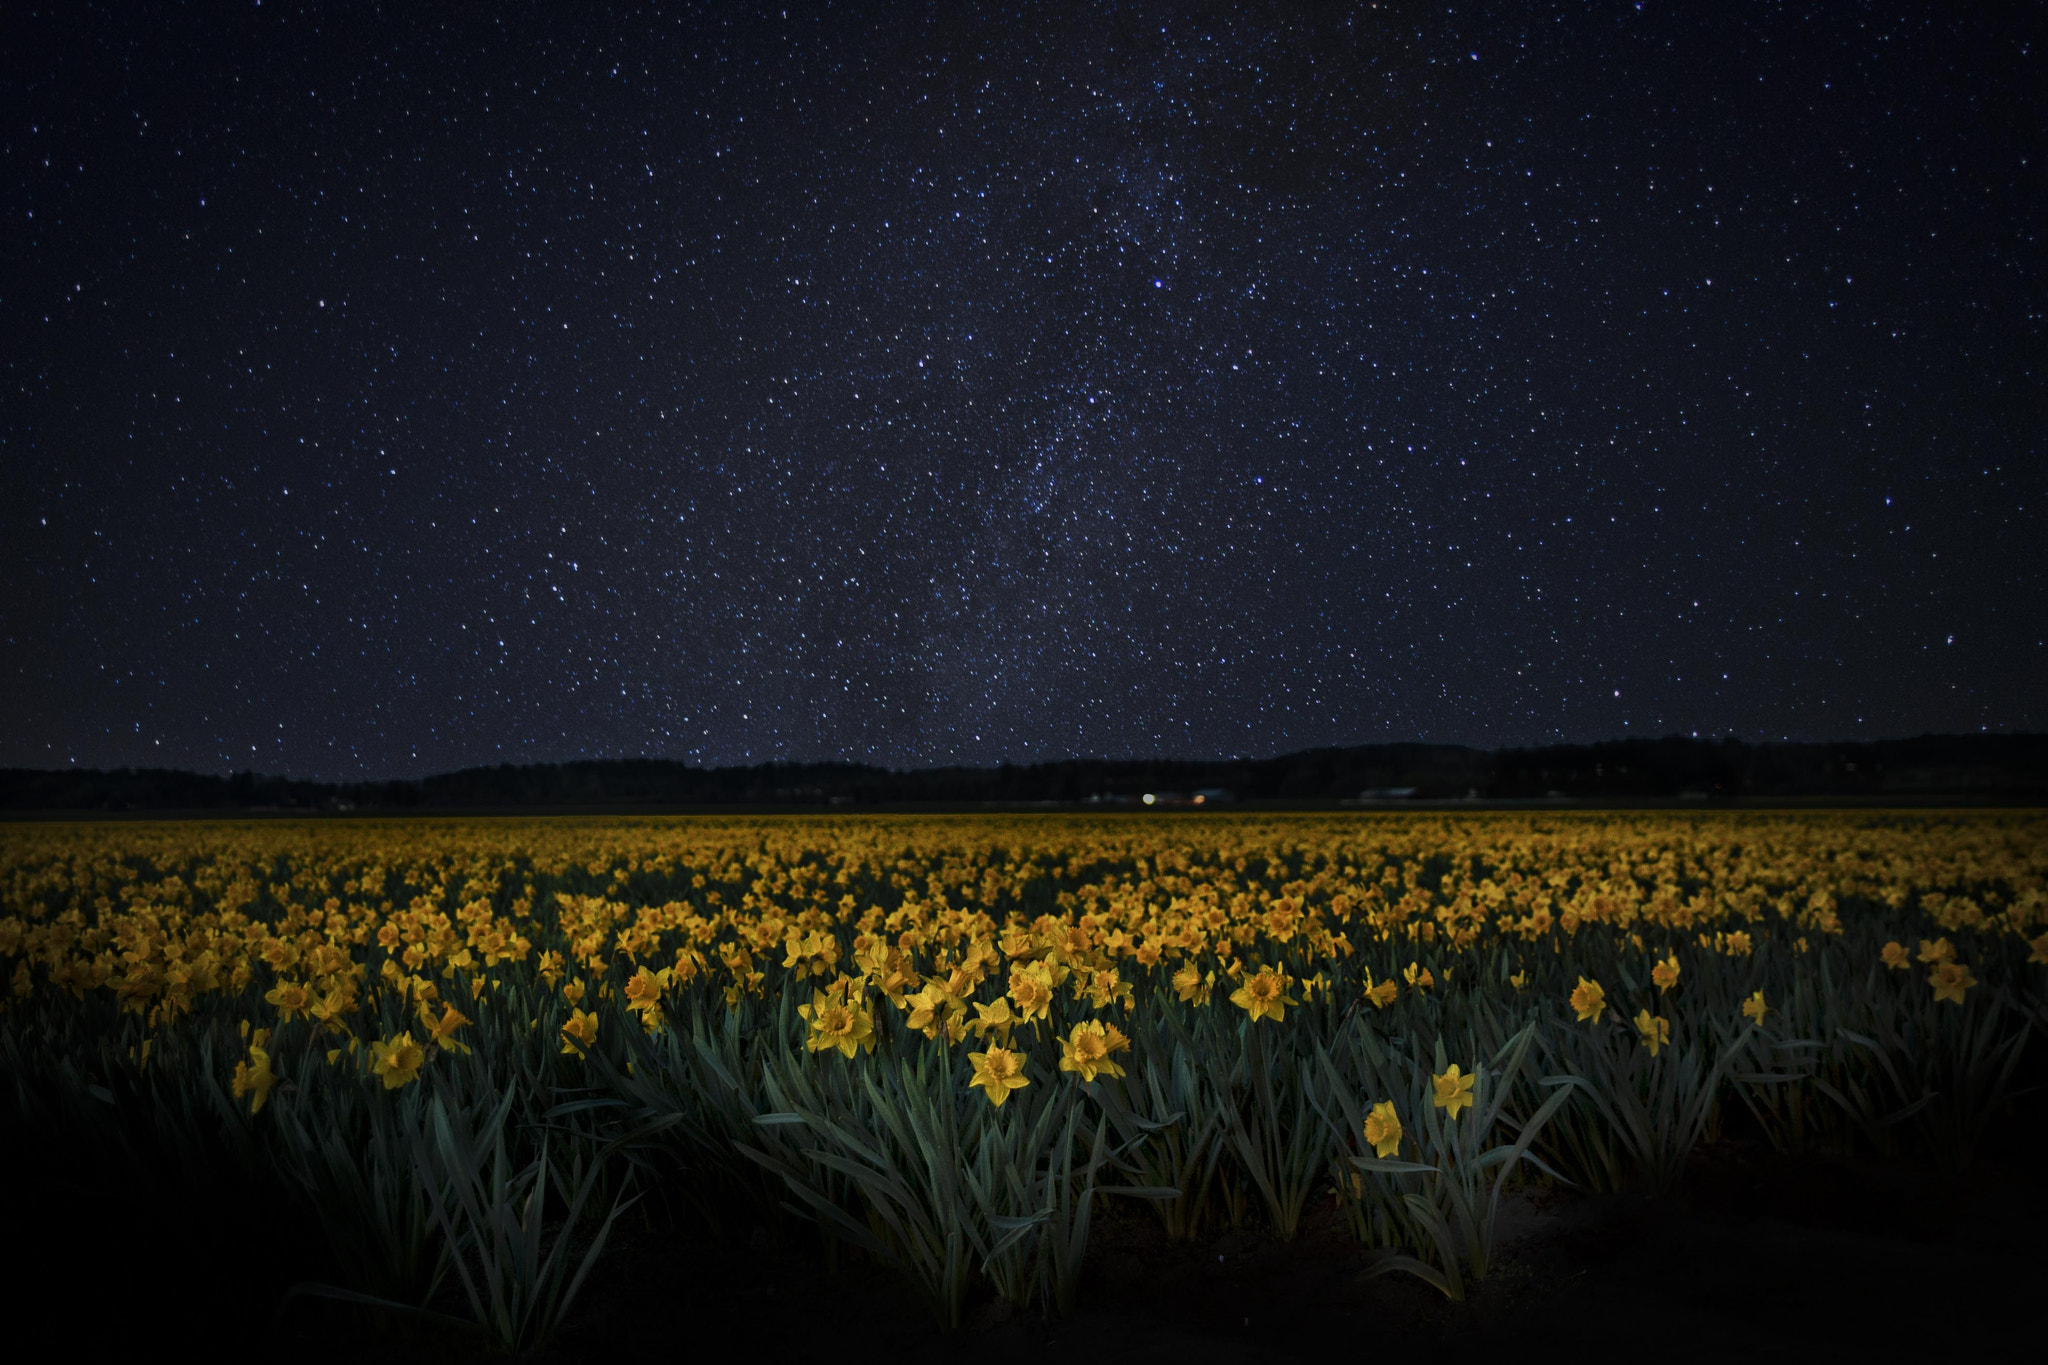 Photograph Daffodil Fields  by Jake Johnson on 500px